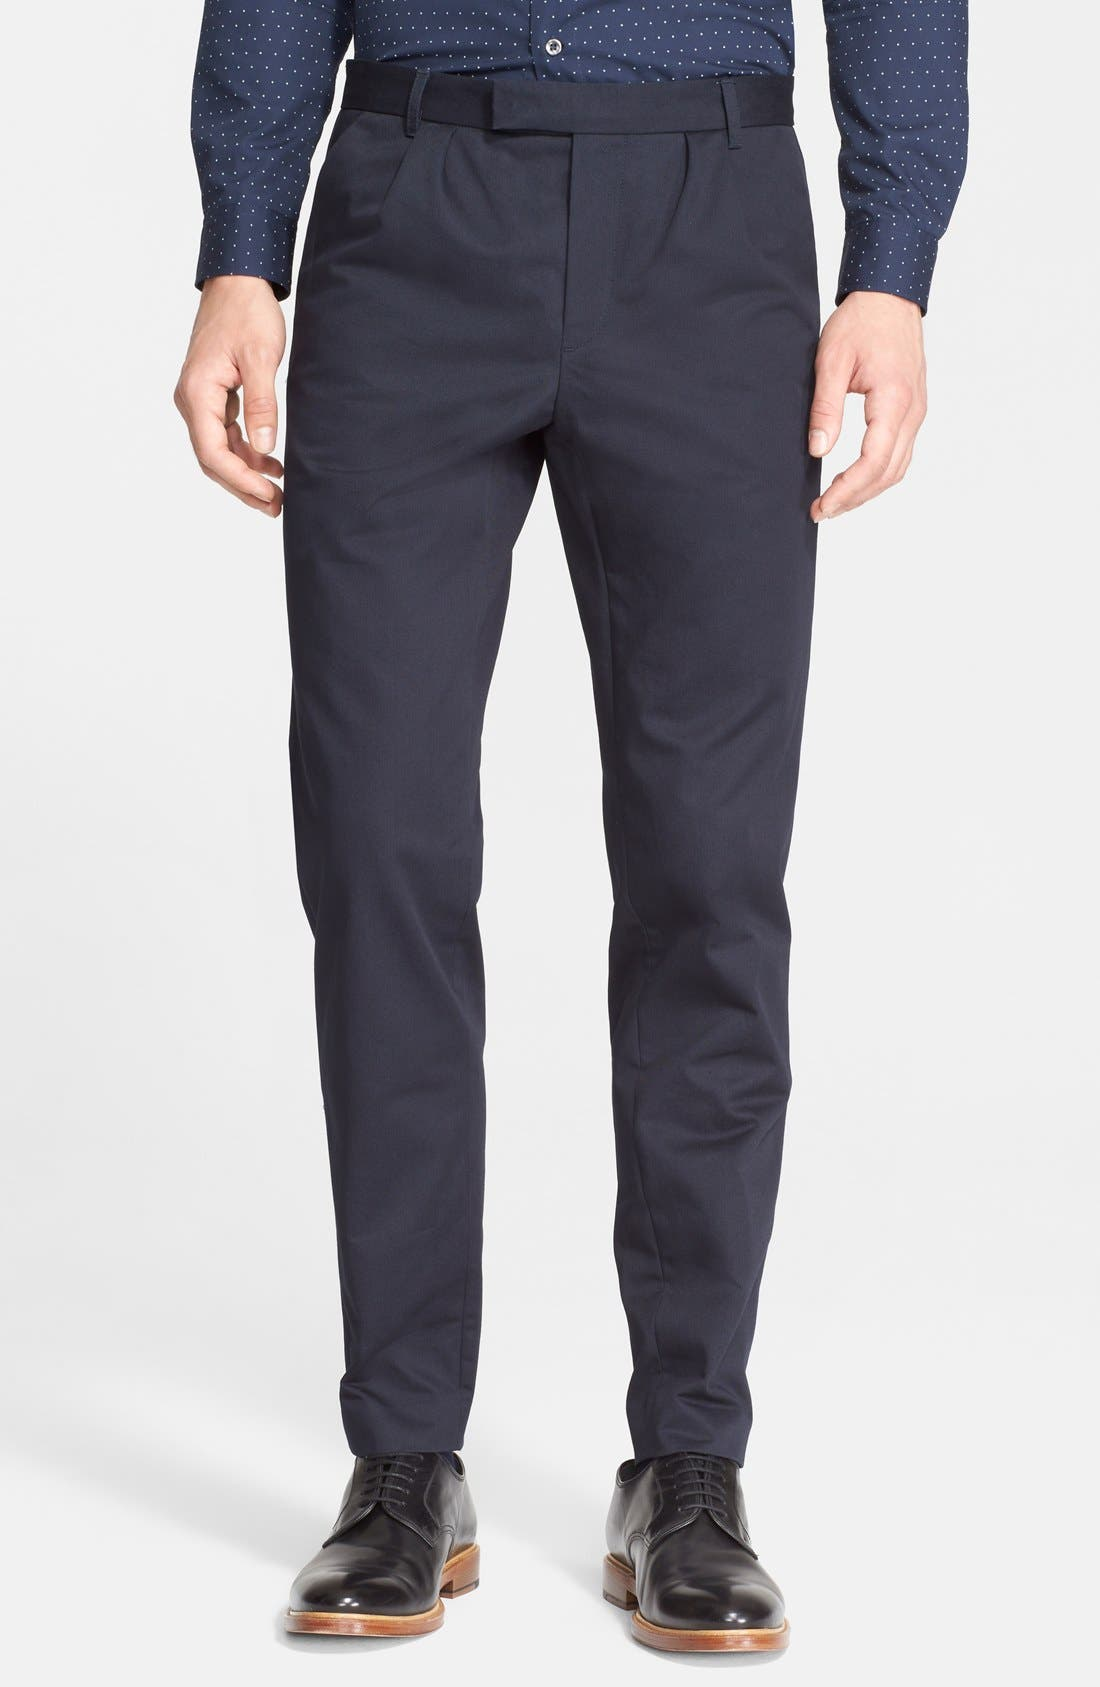 Alternate Image 1 Selected - A.P.C. Pleated Cotton Pants